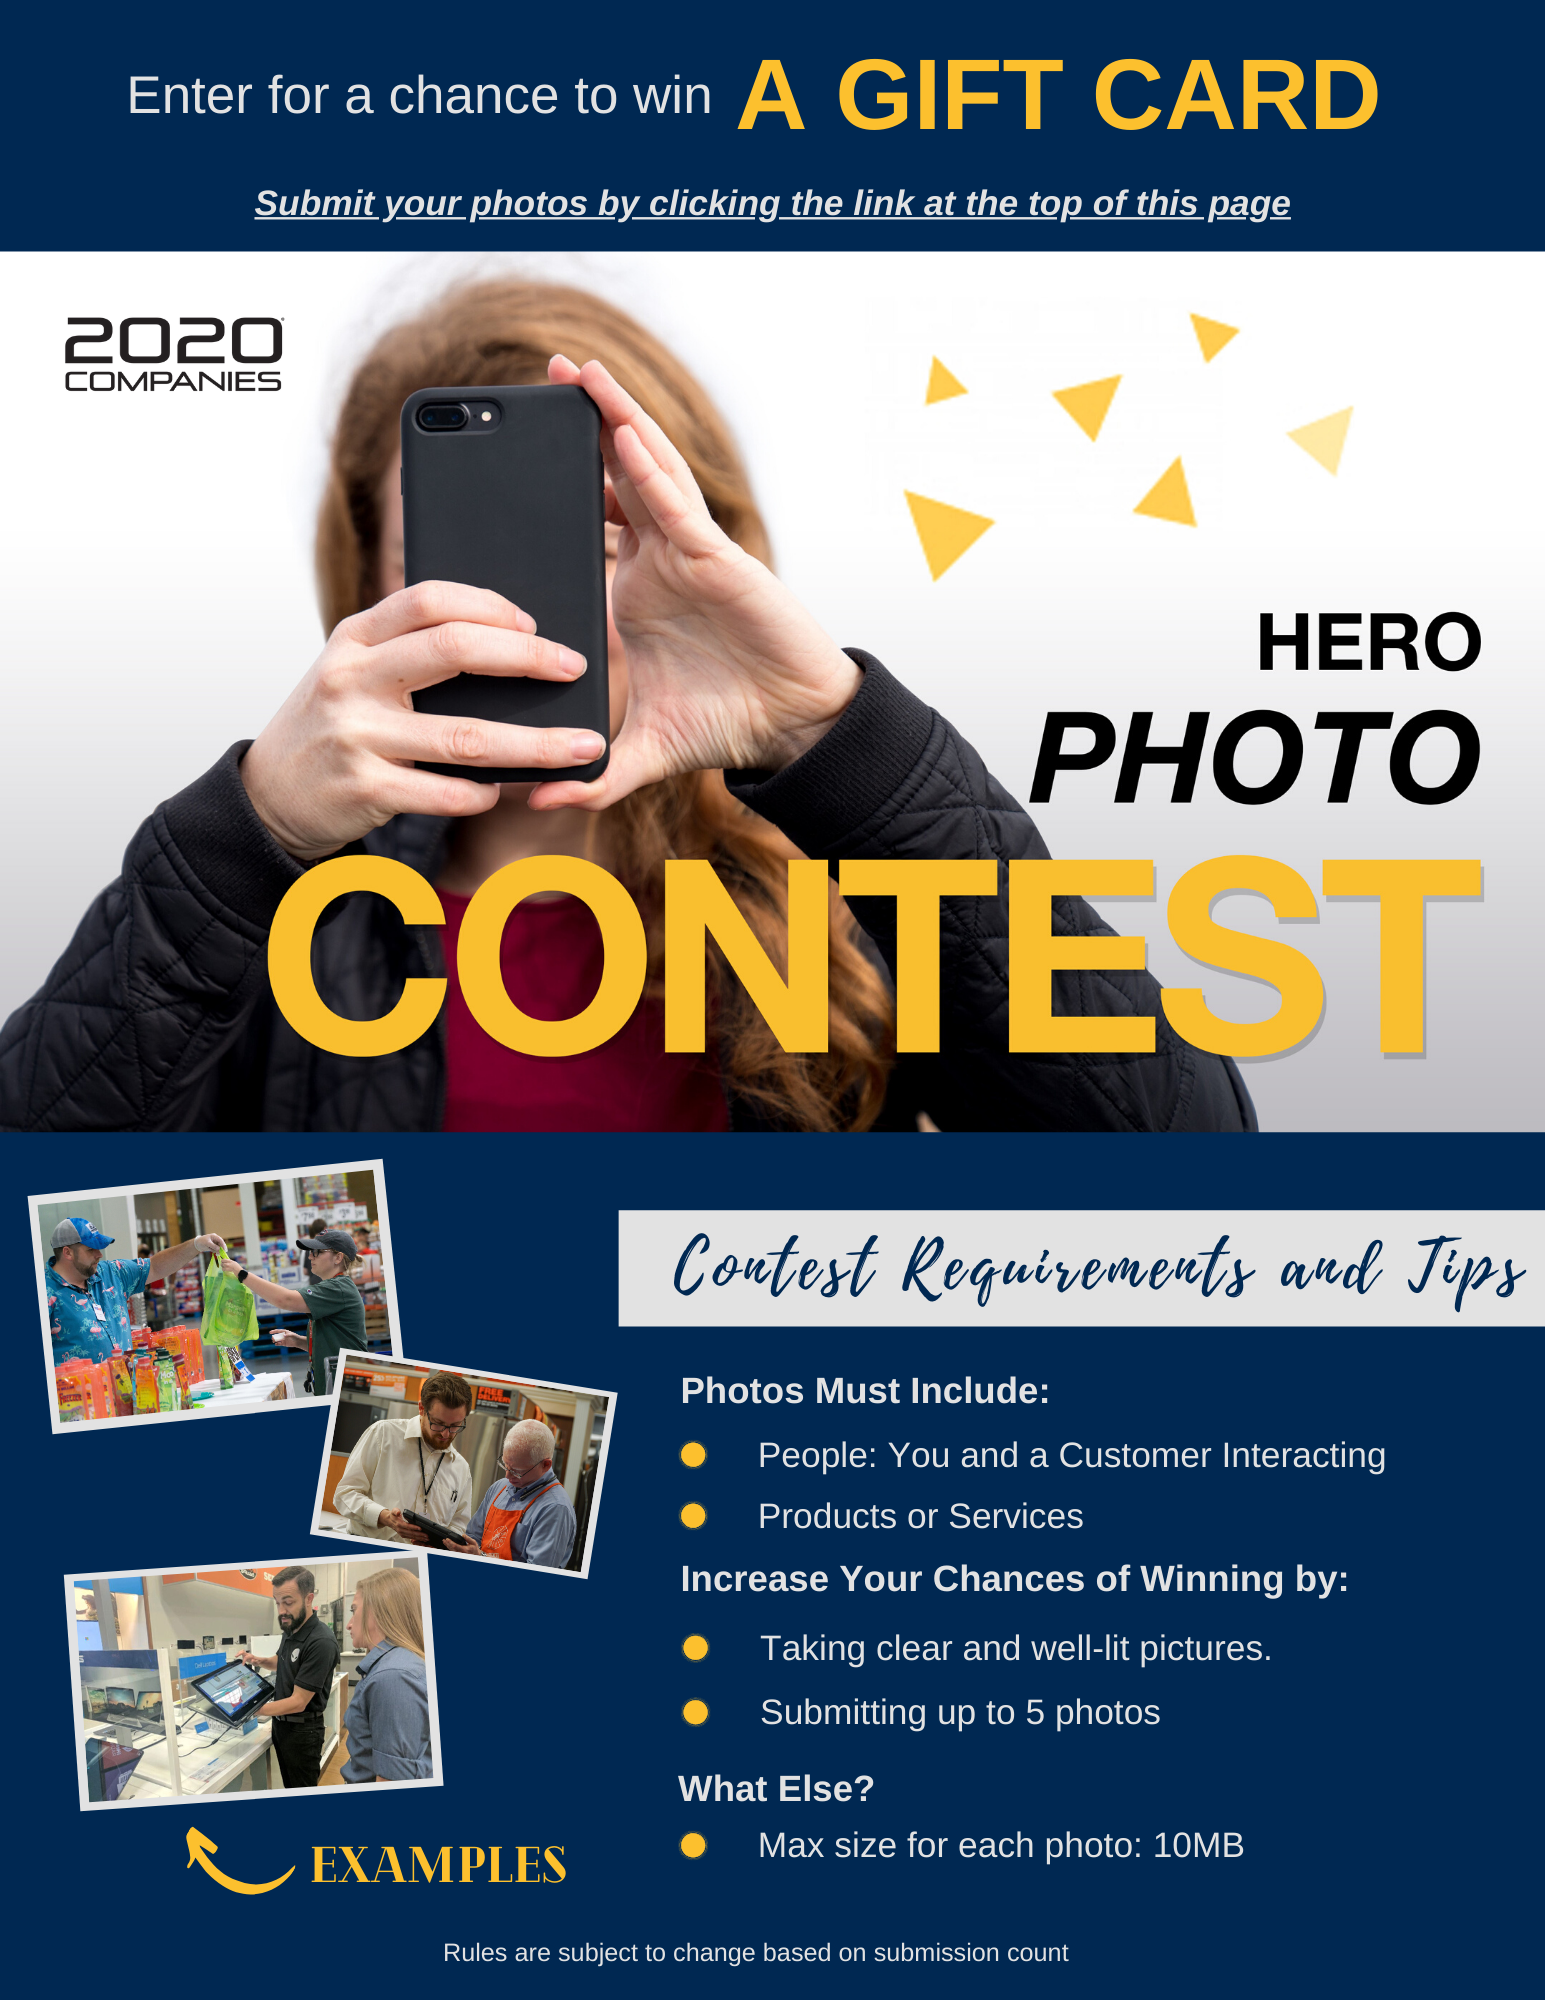 Photo Submission Requirements & Tips (1)